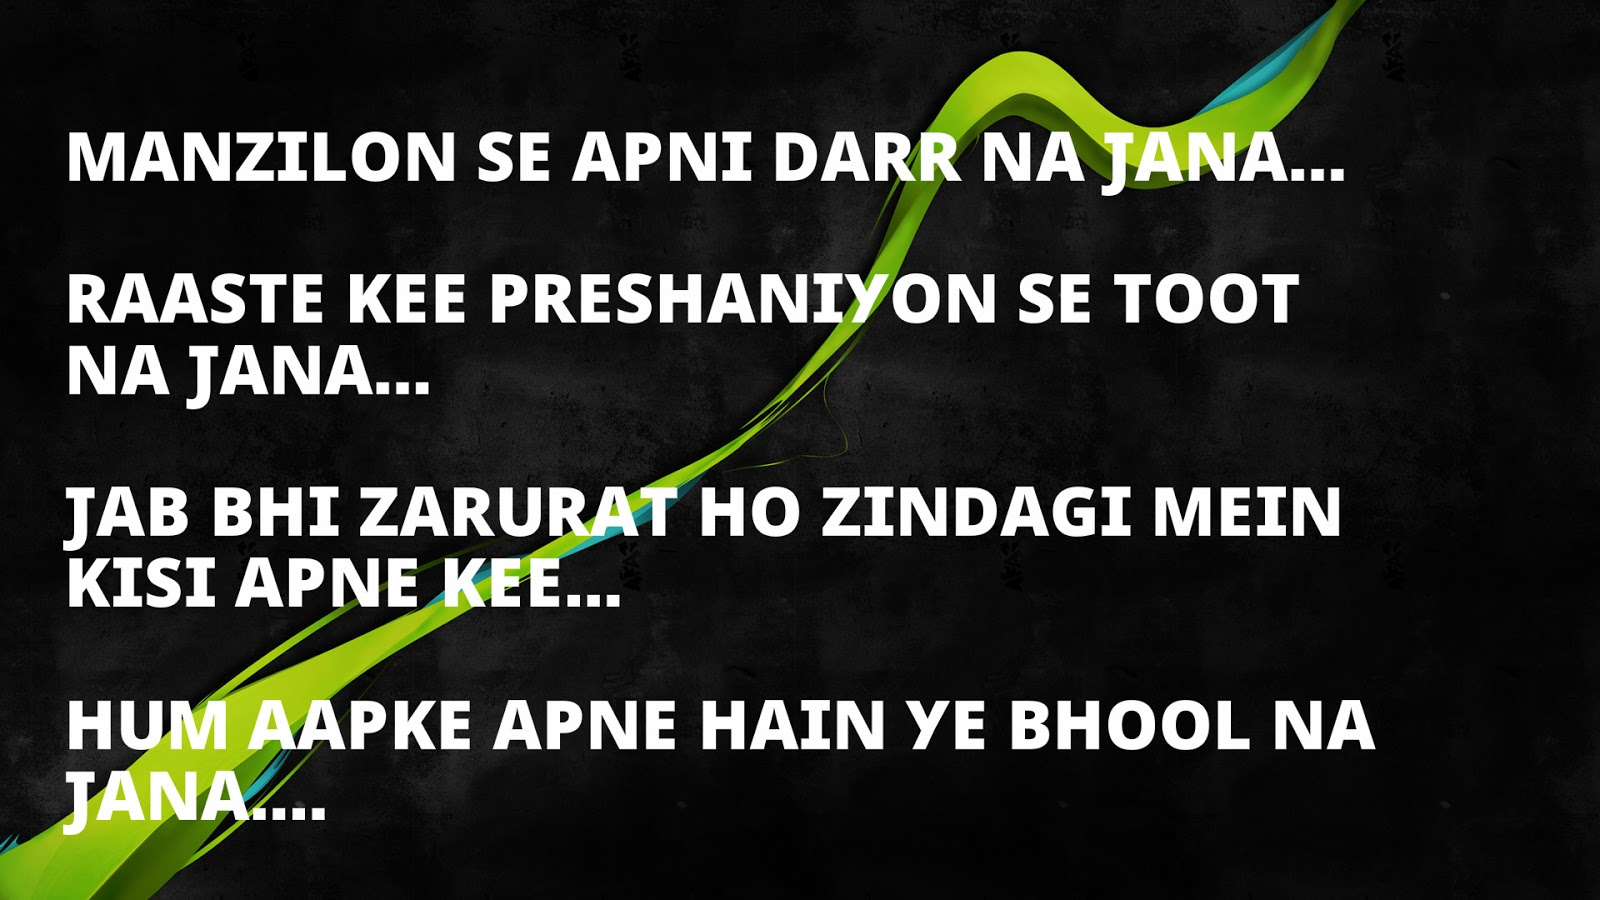 Shayari Hi Shayari Sad Images Wallpapers Shayari Download 1600x900